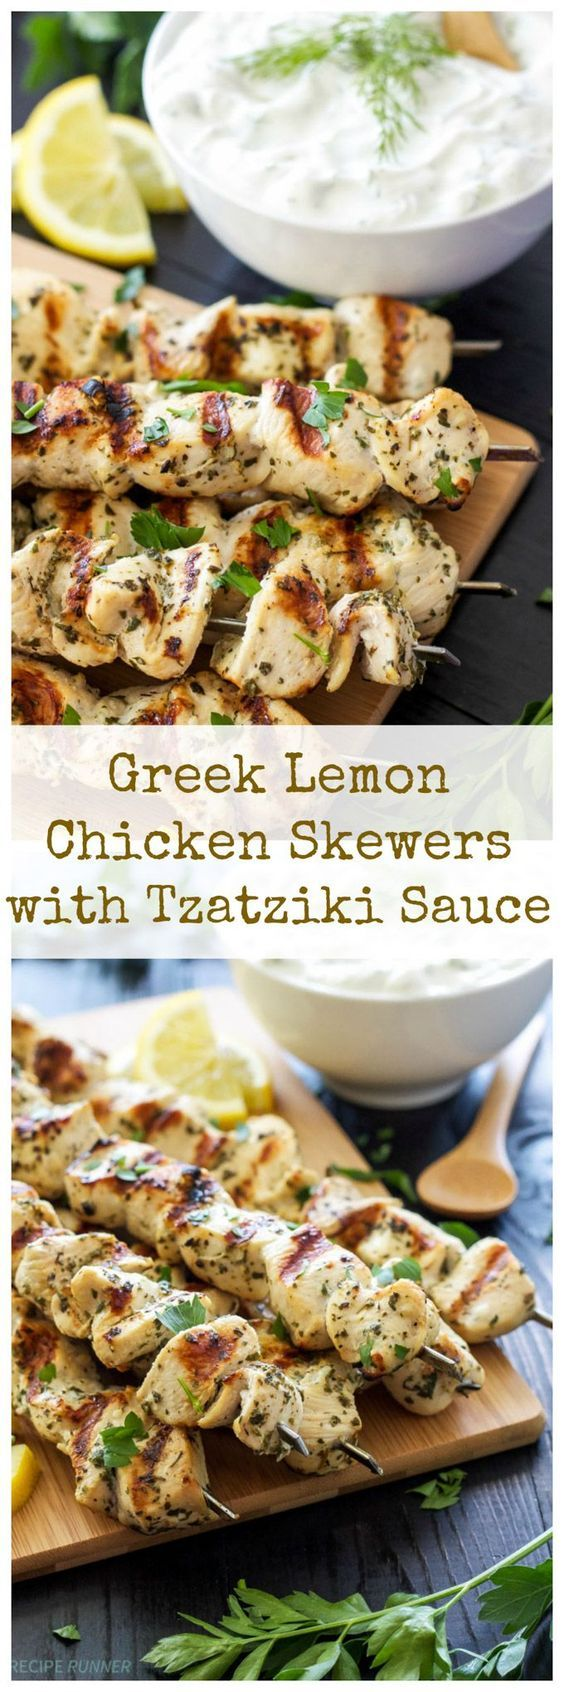 Greek Lemon Chicken Skewers with Tzatziki Sauce | Recipe